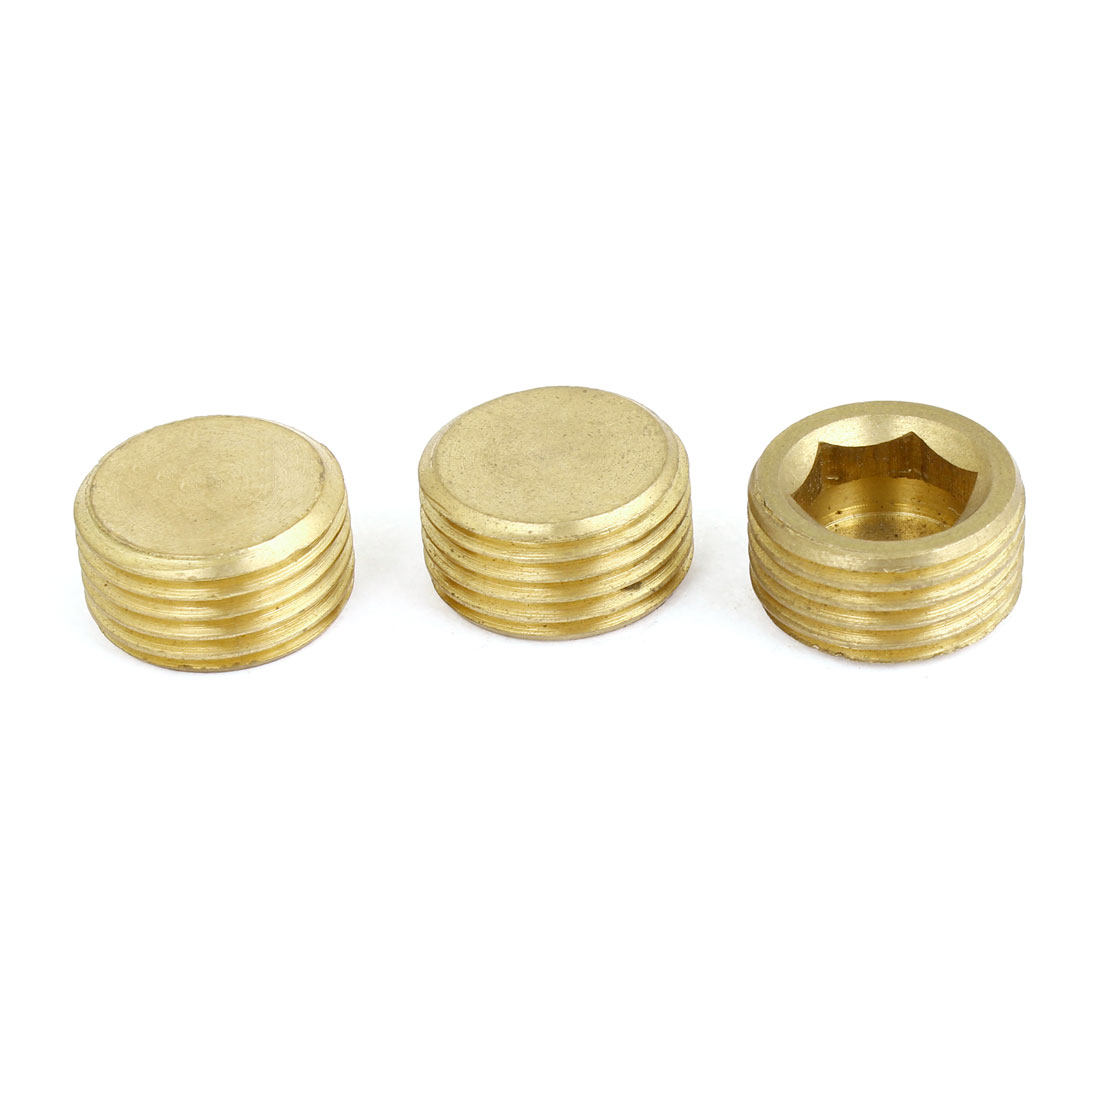 "Brass 1/2"" PT Male Thread Dia Hex Socket Head Pipe Fitting 3pcs"